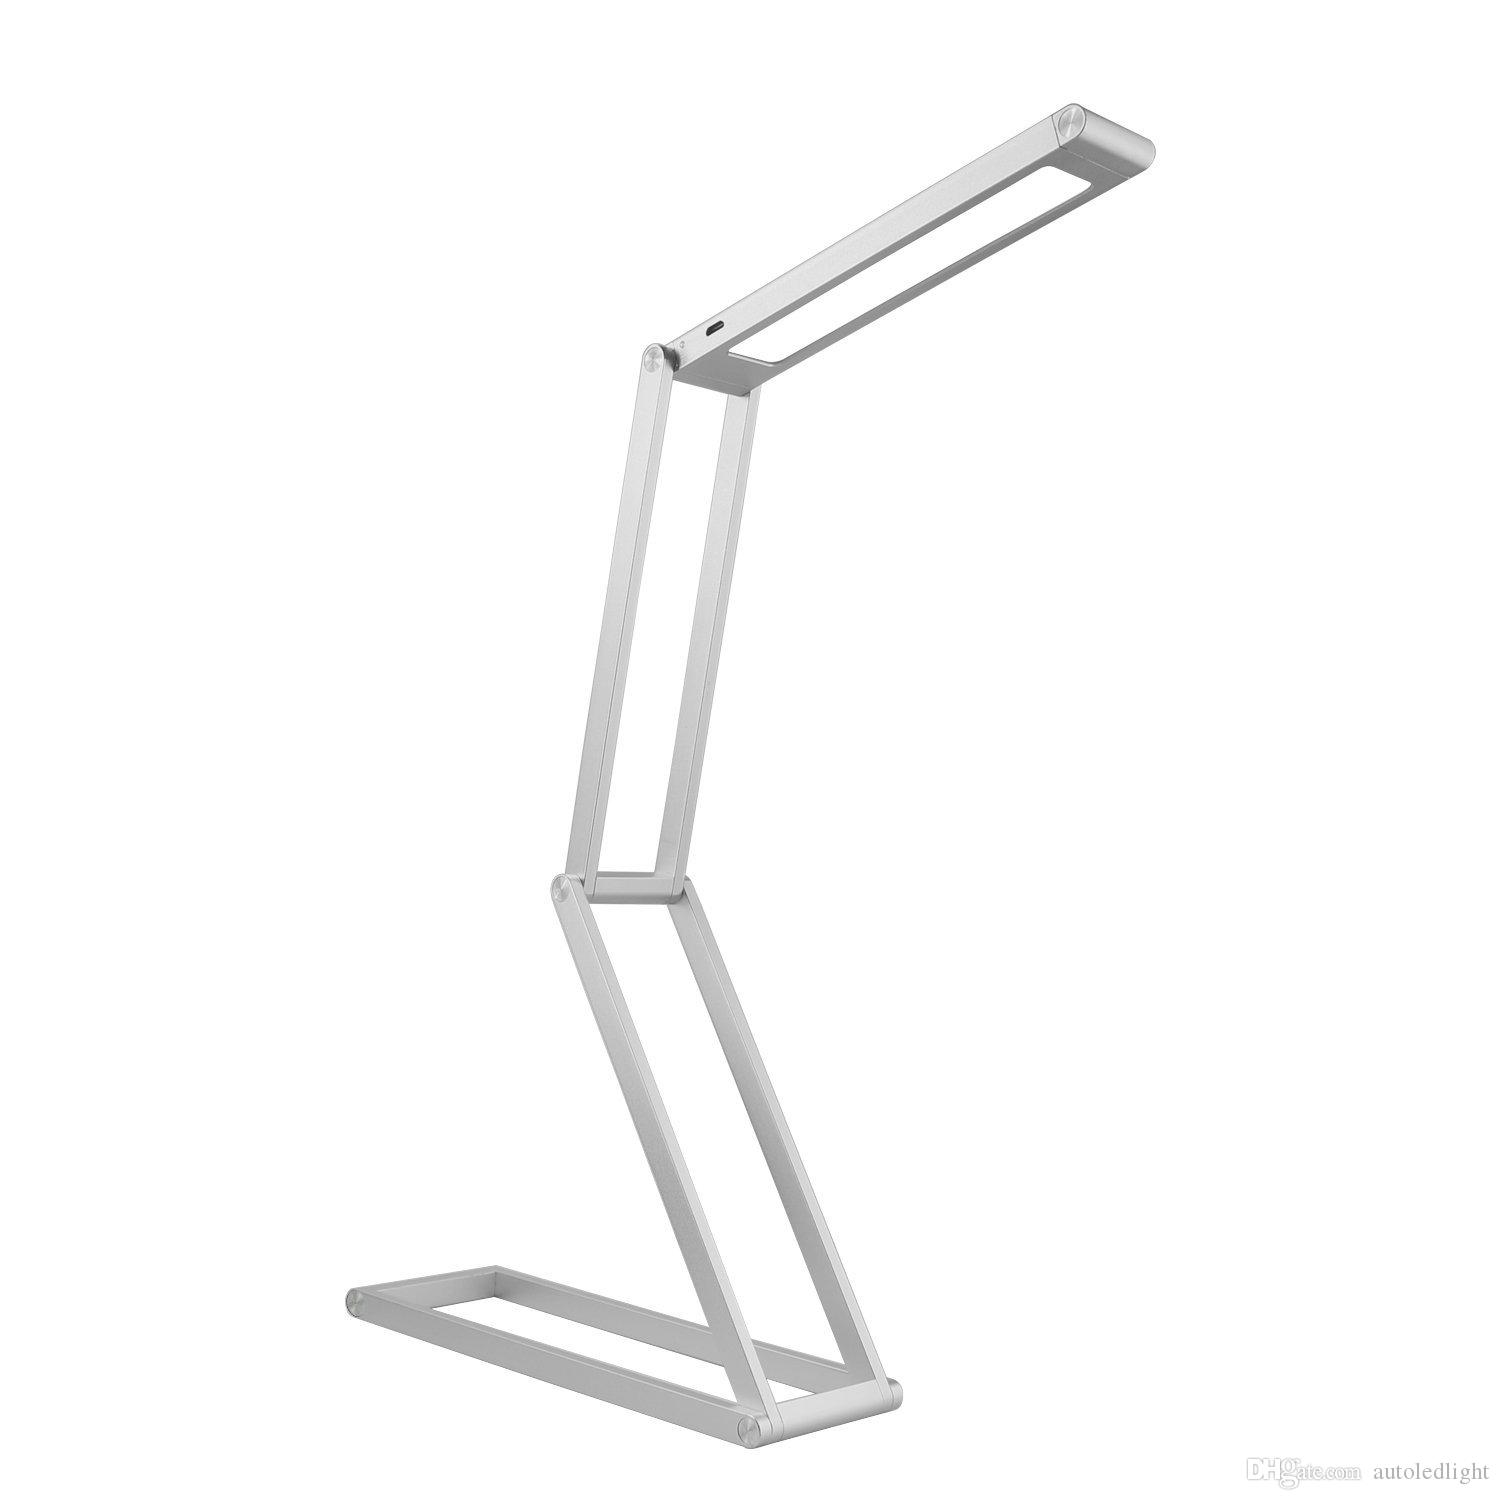 Foldable LED Desk Lamp Transformers Dimmable Table Aluminum Alloy Lamp for Reading studing relax decocation for room